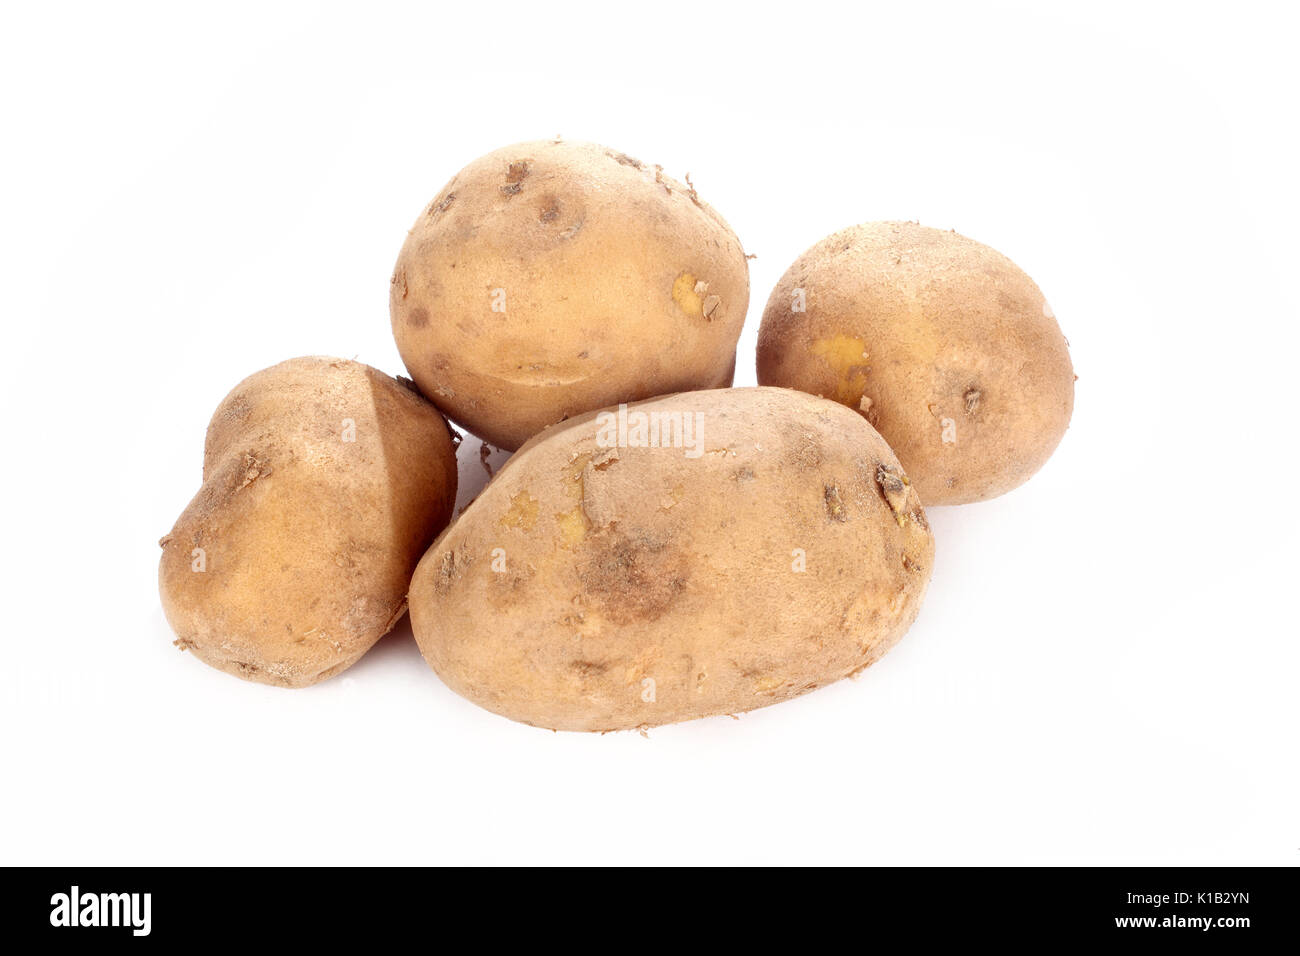 close up shot of potatoes isolated on white background. - Stock Image